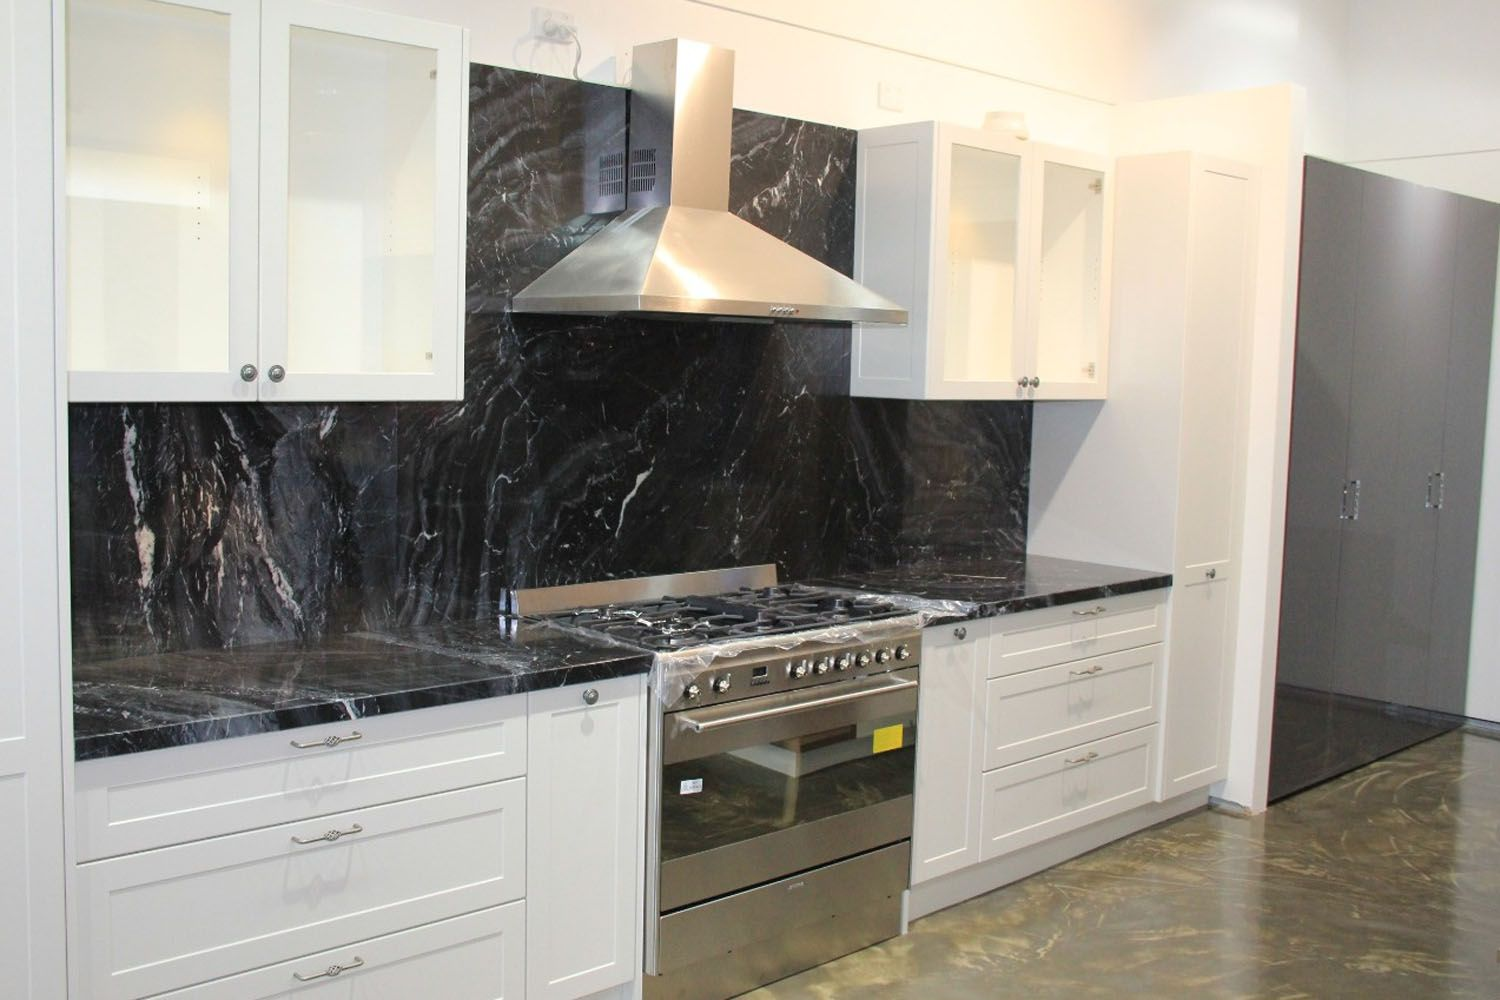 Benchtop Melbourne We Supply Benchtops Melbourne Made To Measure Bench Tops For All